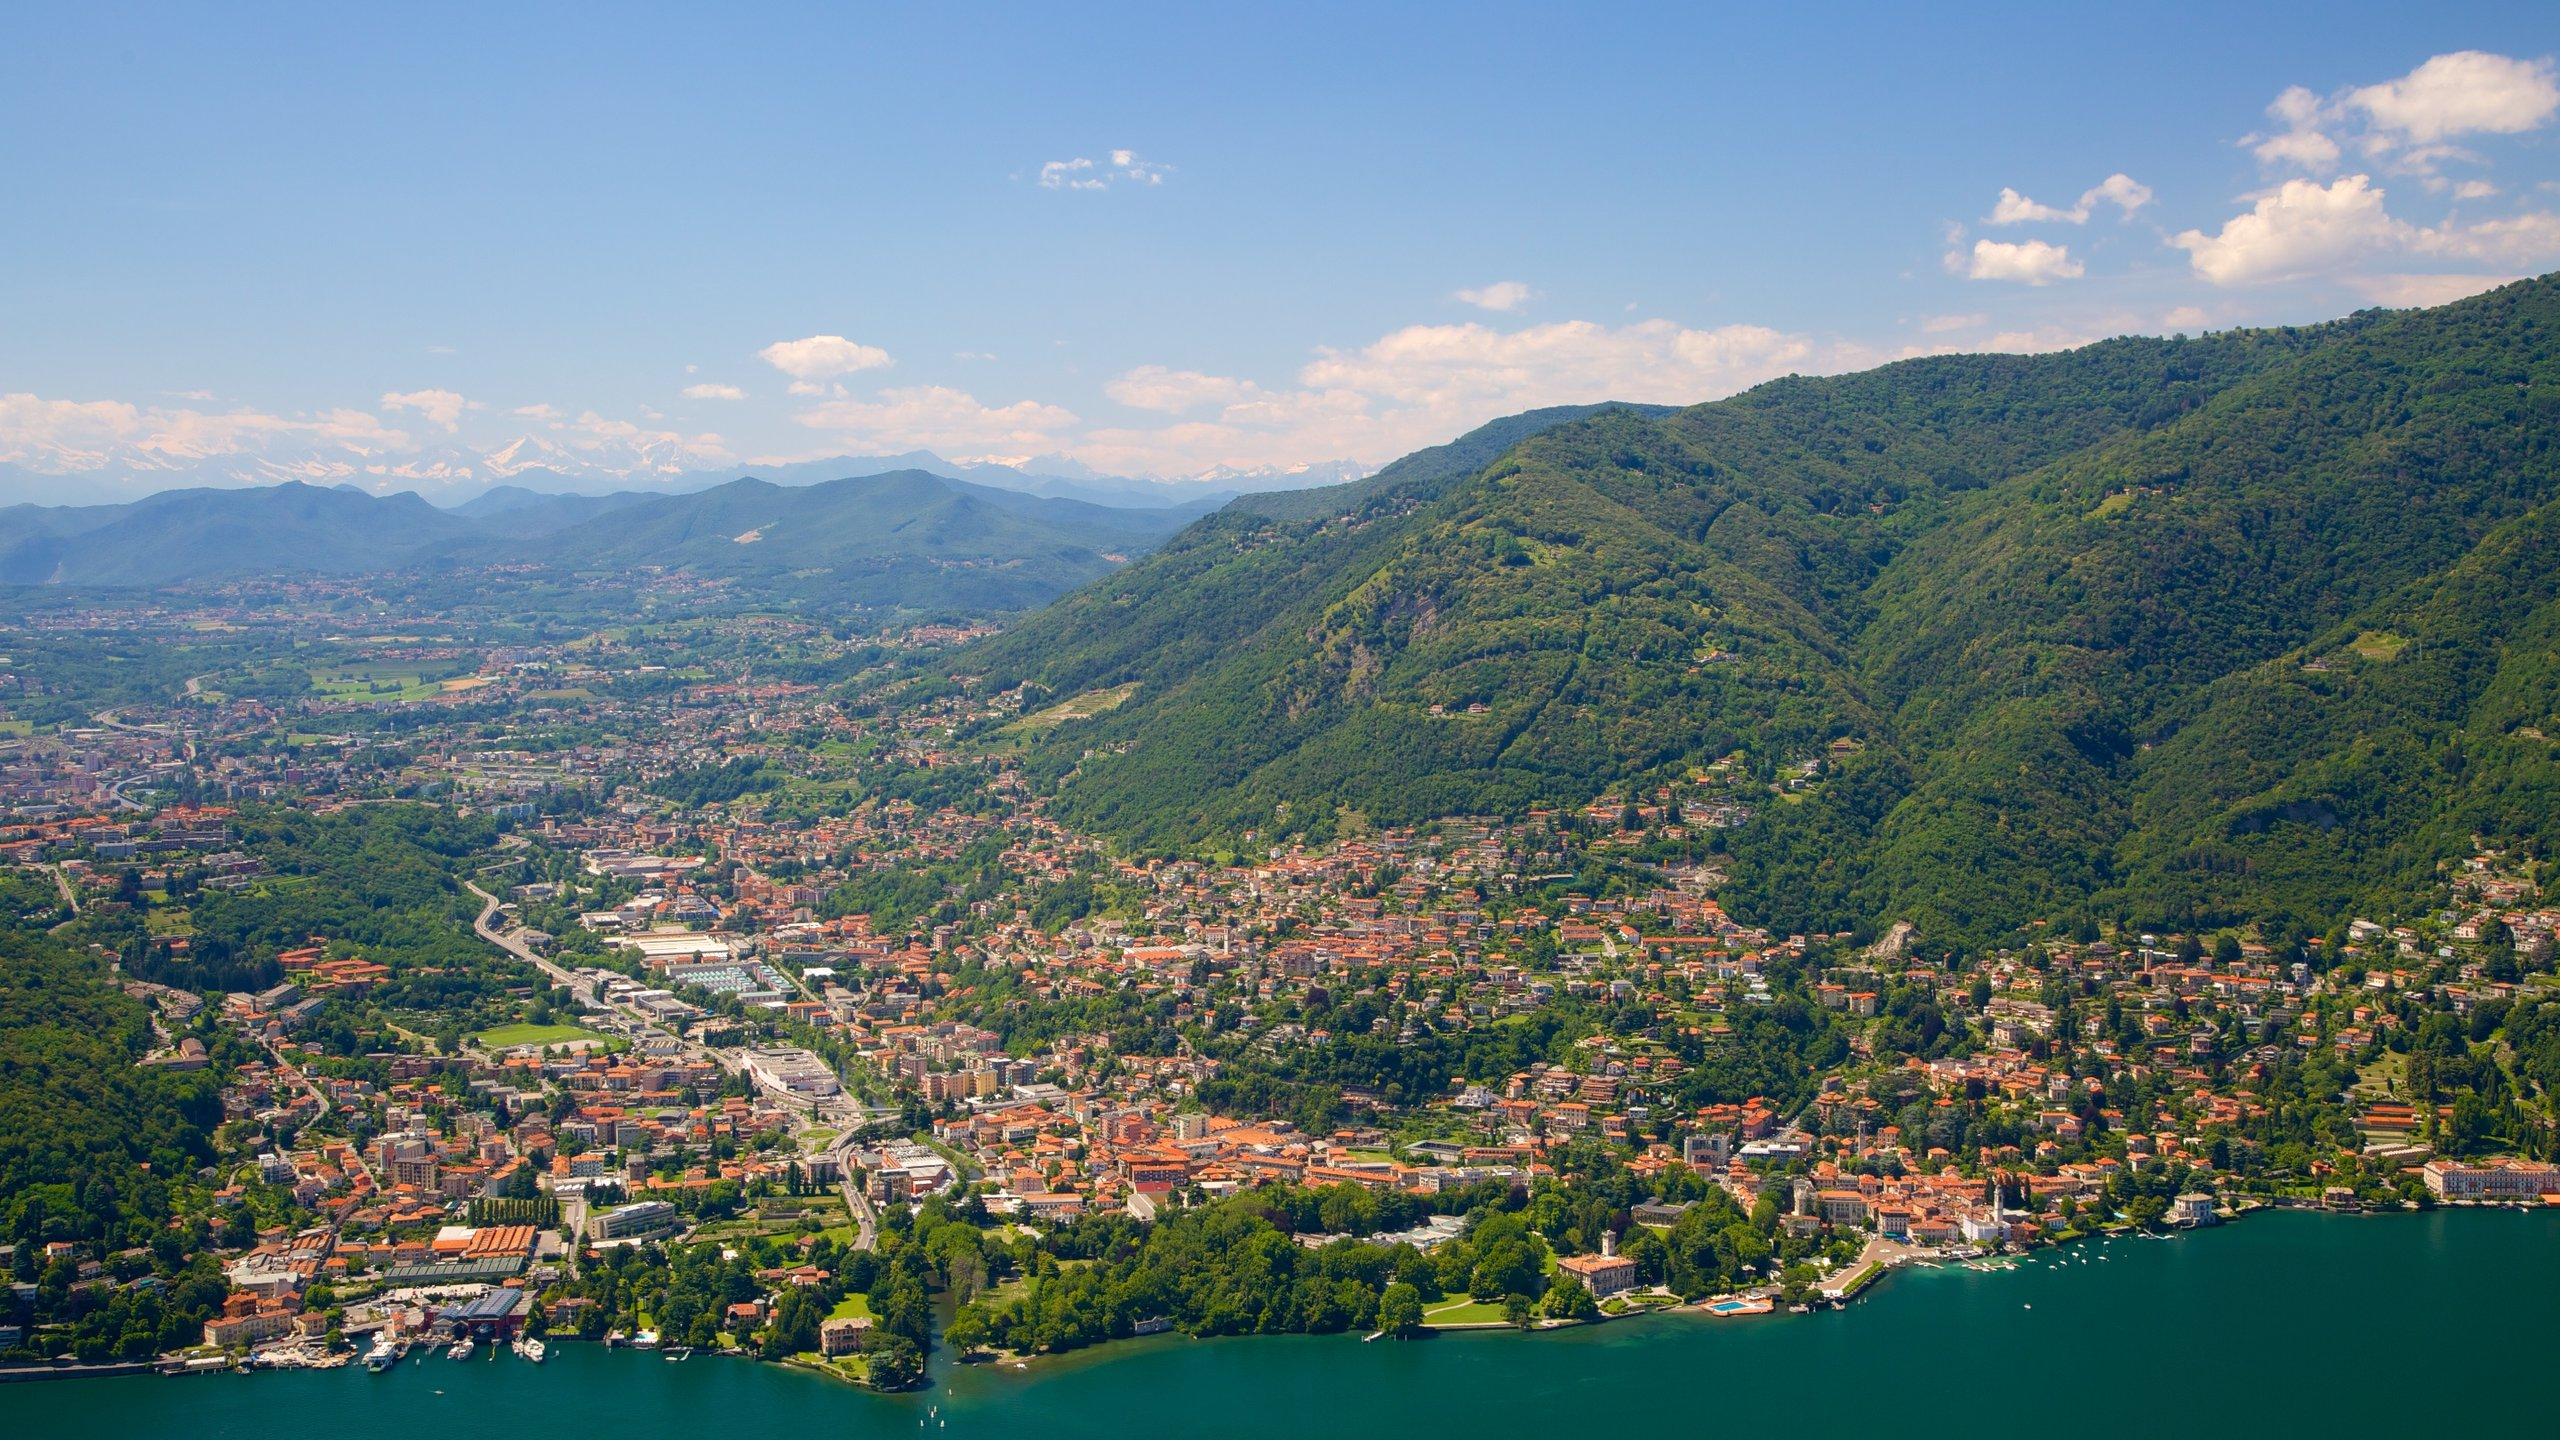 Province of Como, Lombardy, Italy